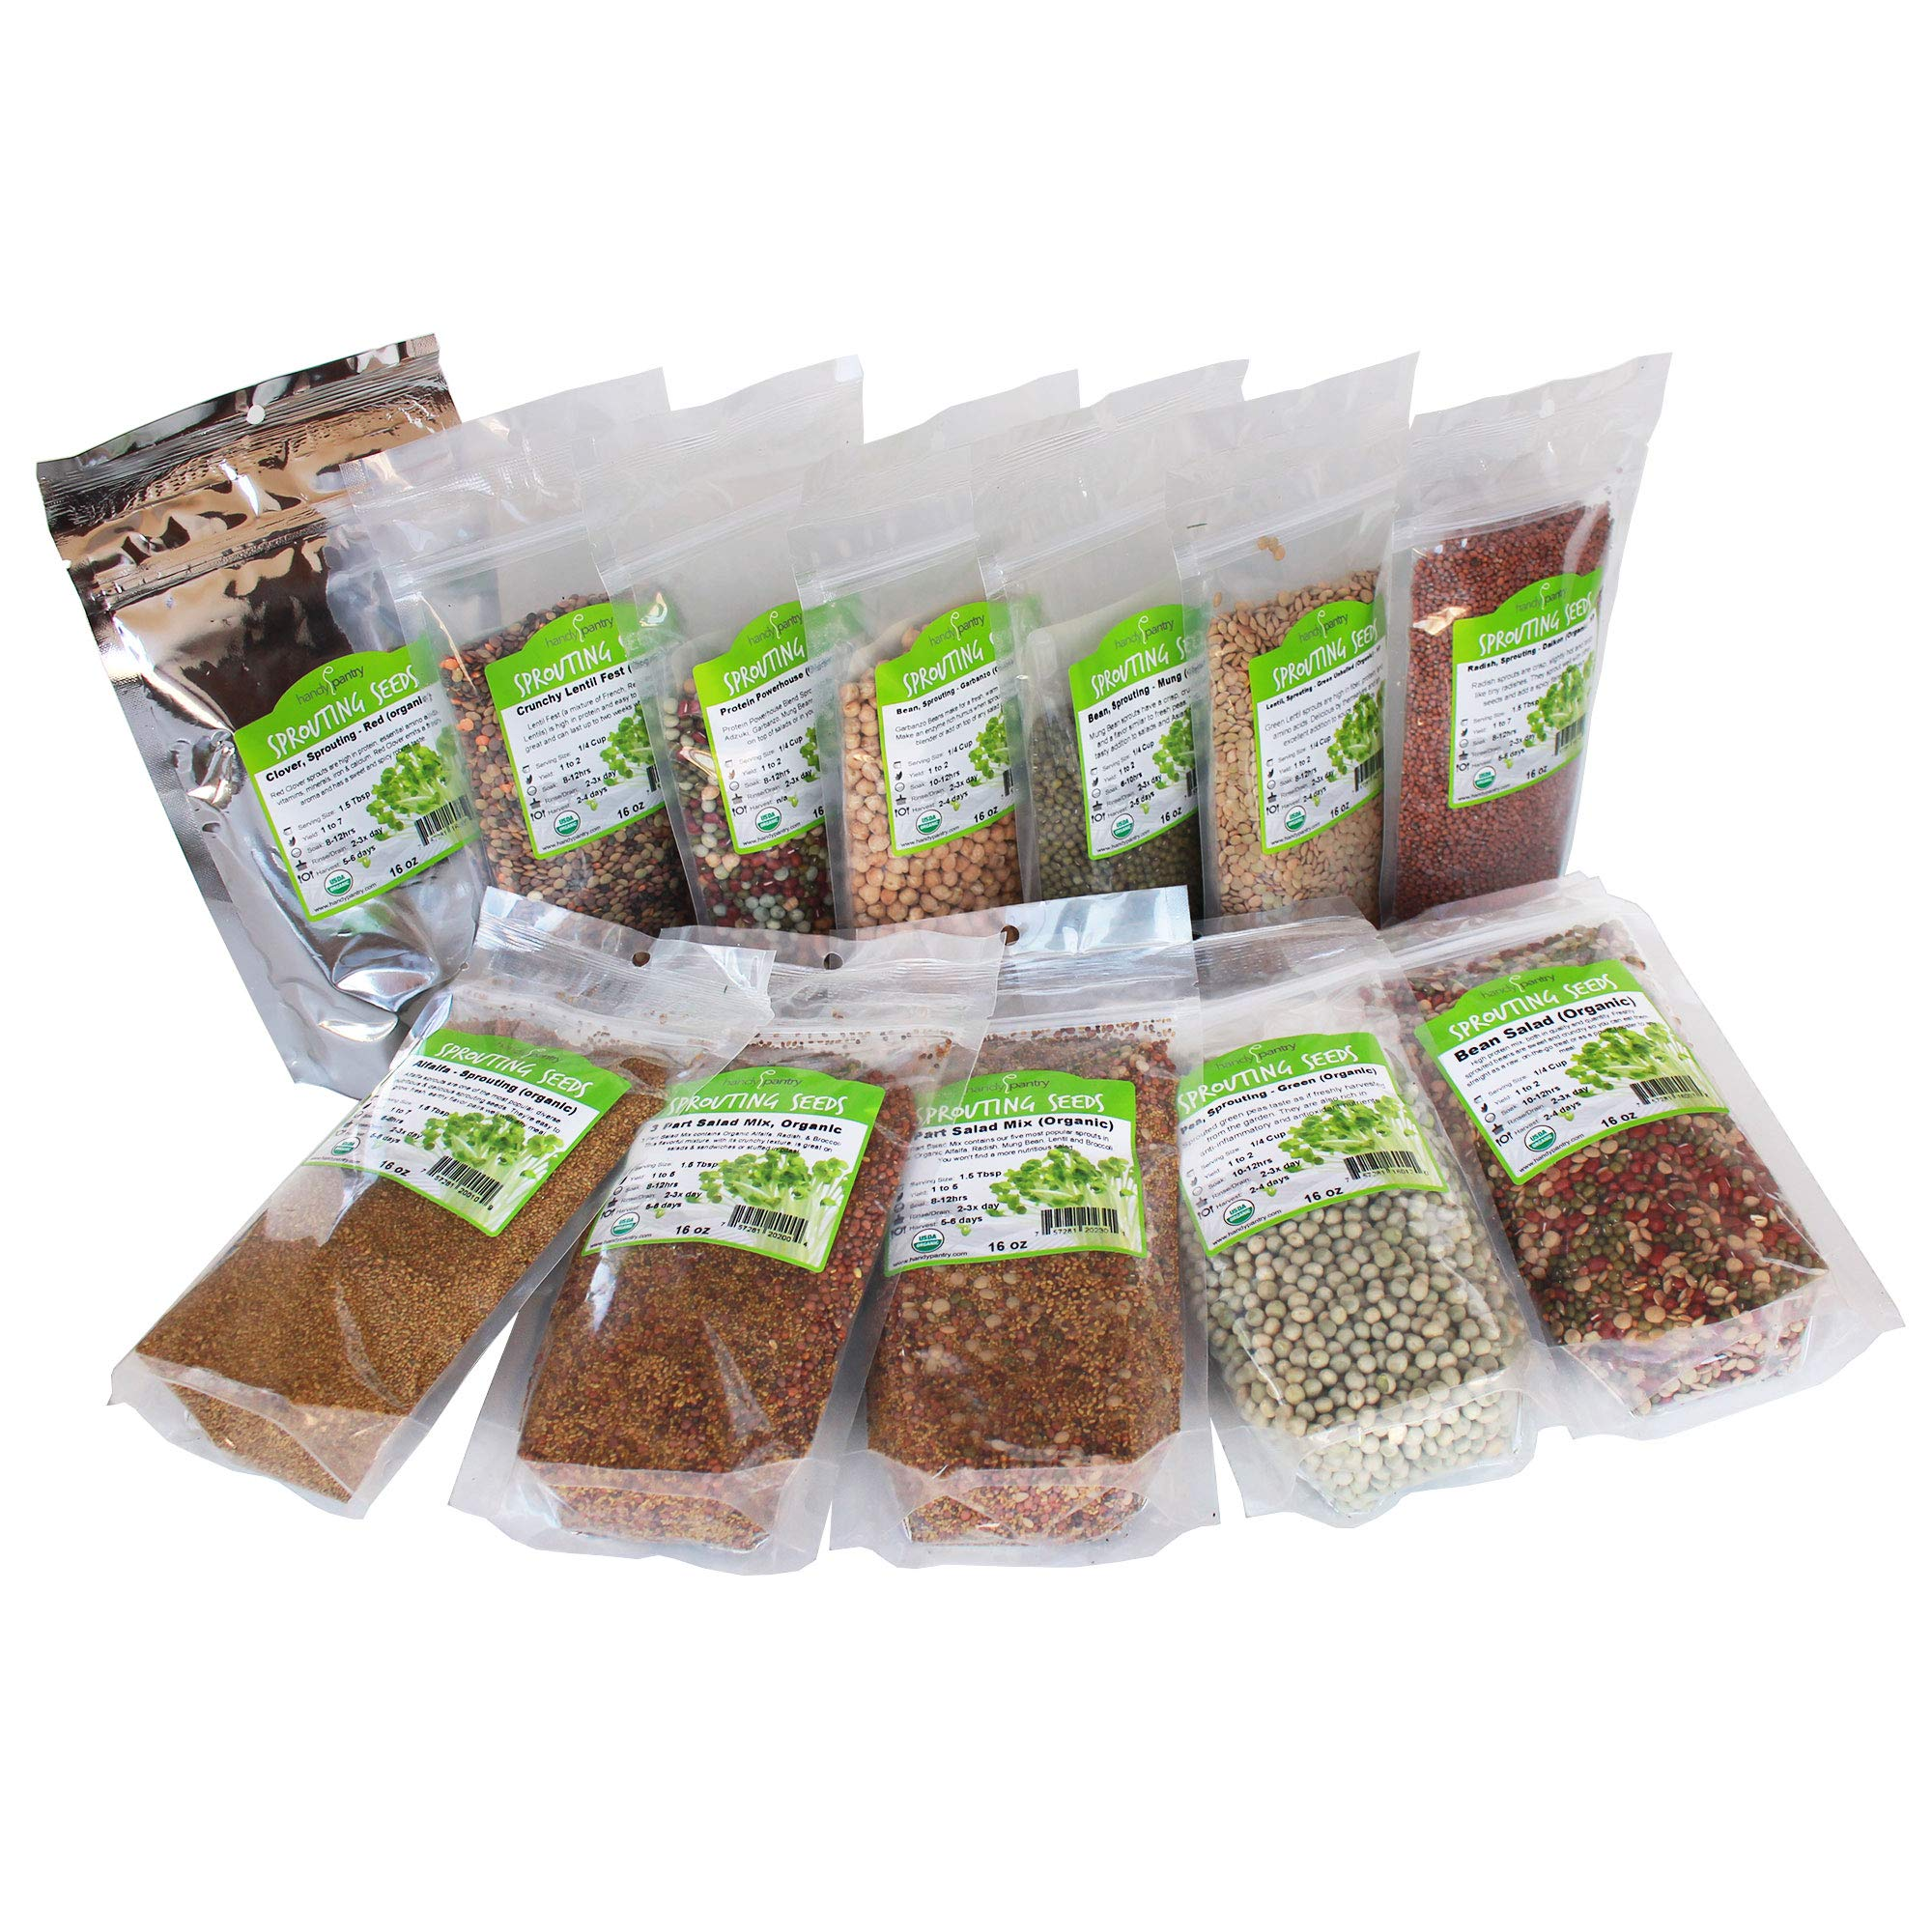 Beginners Dozen Organic Sprouting Seeds - 1 Lb Ea. of Alfalfa, Bean Salad, Lentil Fest, Red Clover, Garbanzo, Green Lentil, Green Pea, Mung Bean, Protein Powerhouse, 3 Salad, 5 Salad, & Radish by Handy Pantry